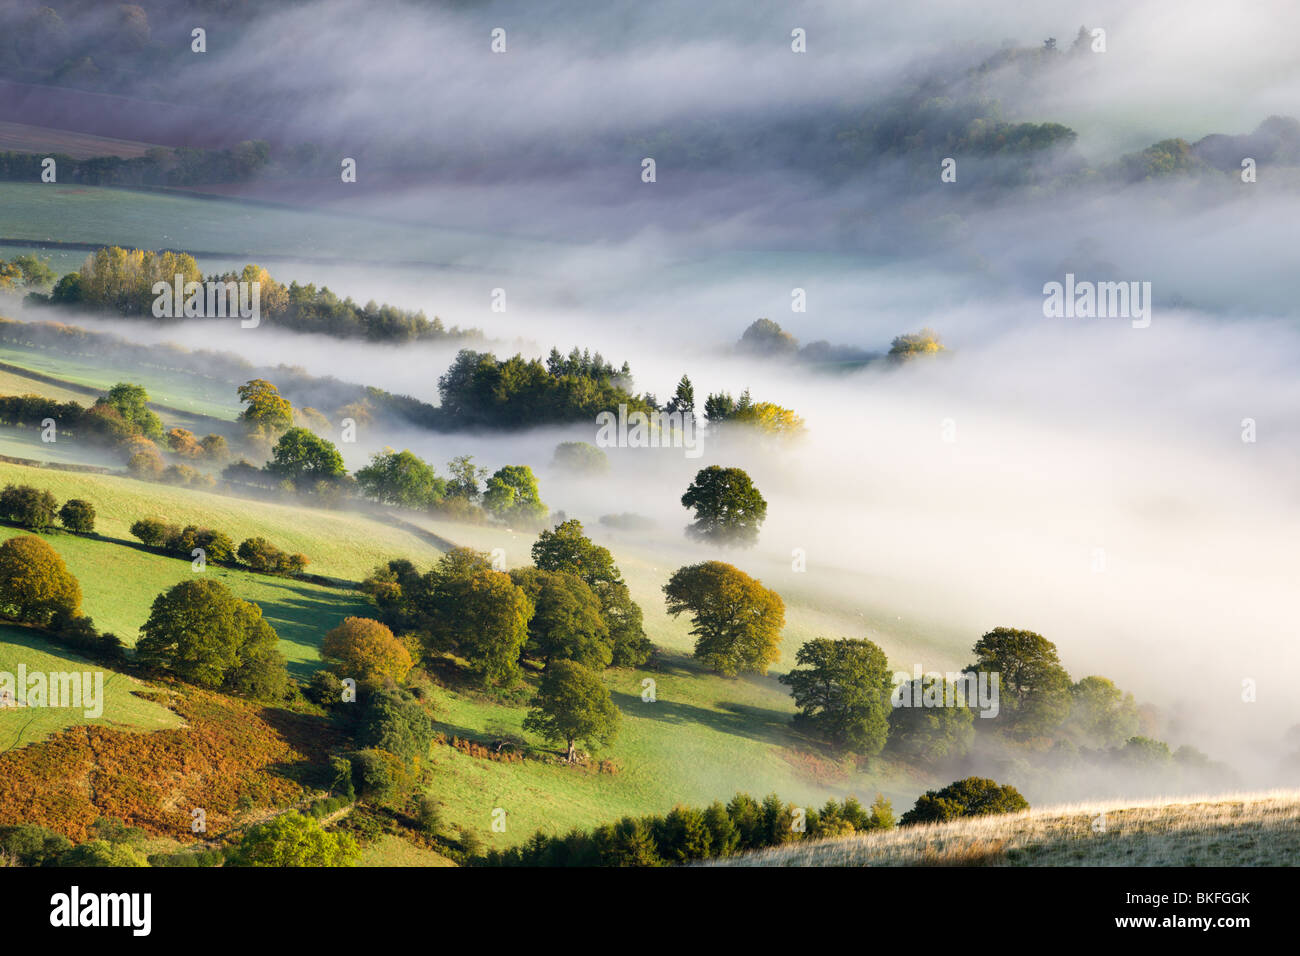 Mist covered rolling countryside in the Usk Valley, Brecon Beacons National Park, Powys, Wales, UK. Autumn (October) - Stock Image